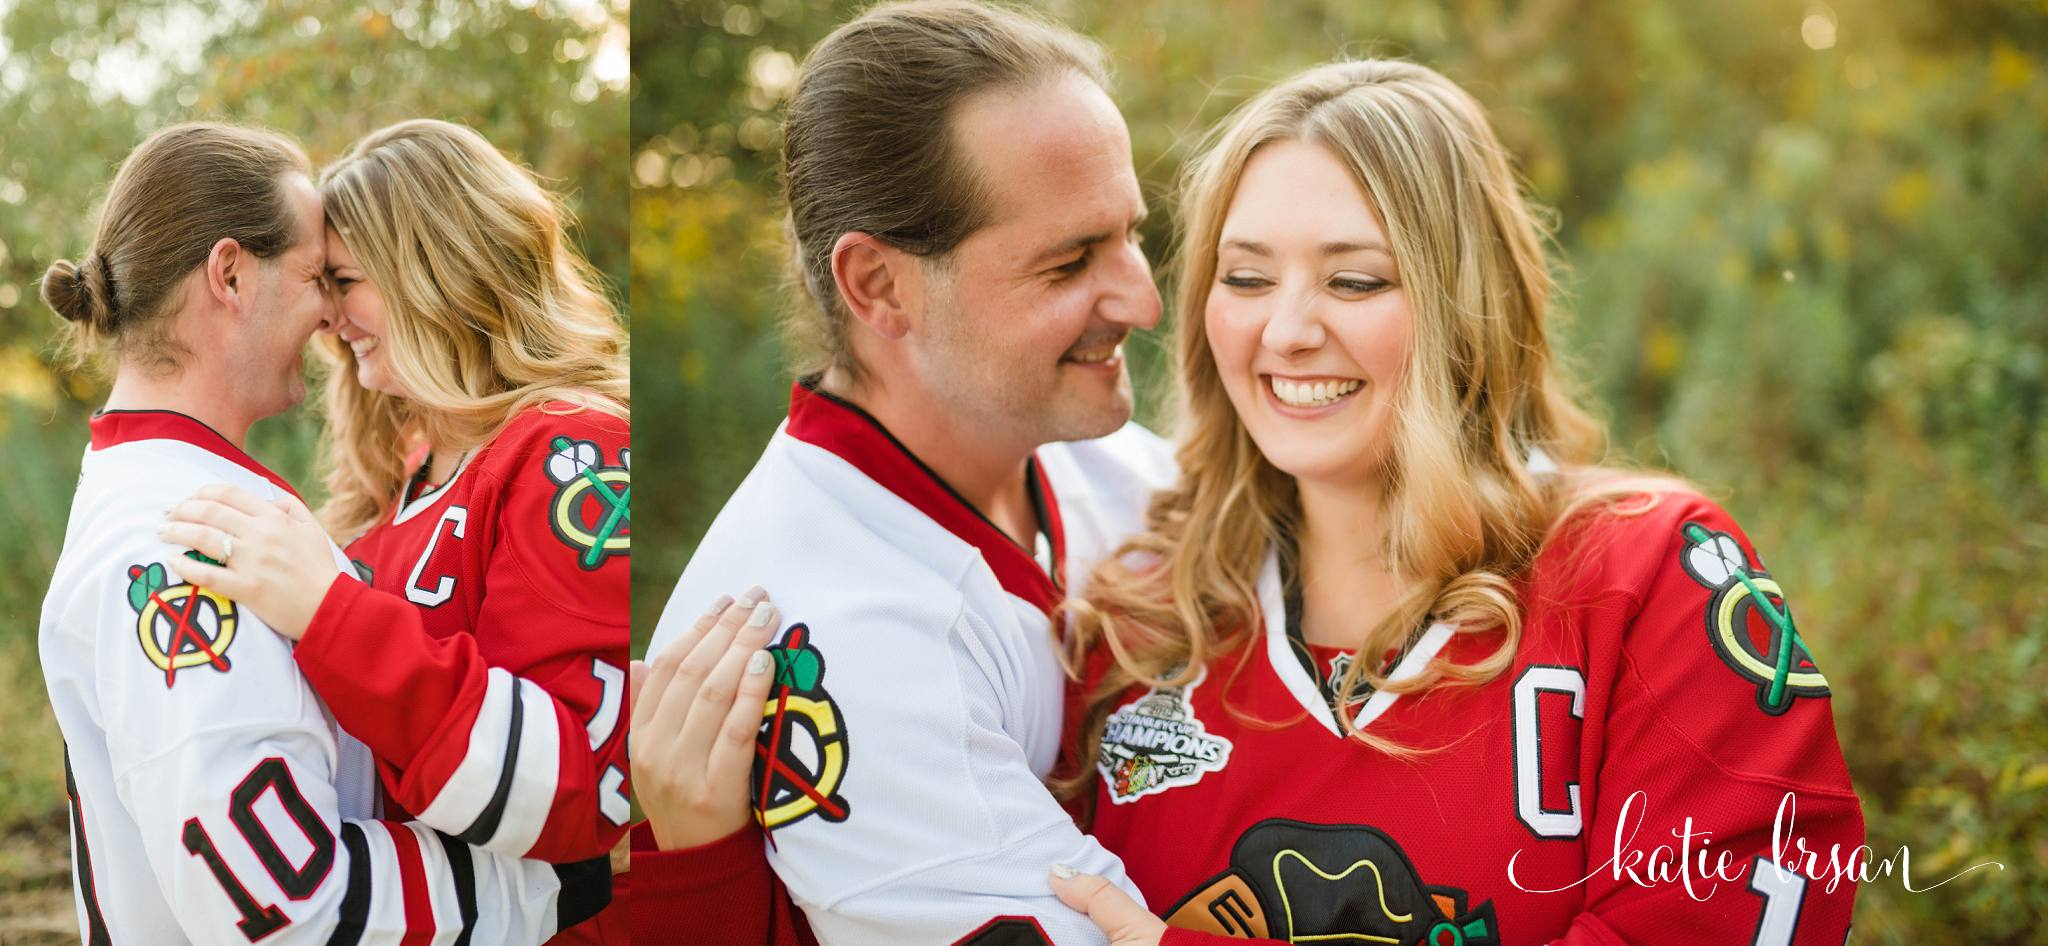 couple laughing in hocky jersies having engagment photos taken